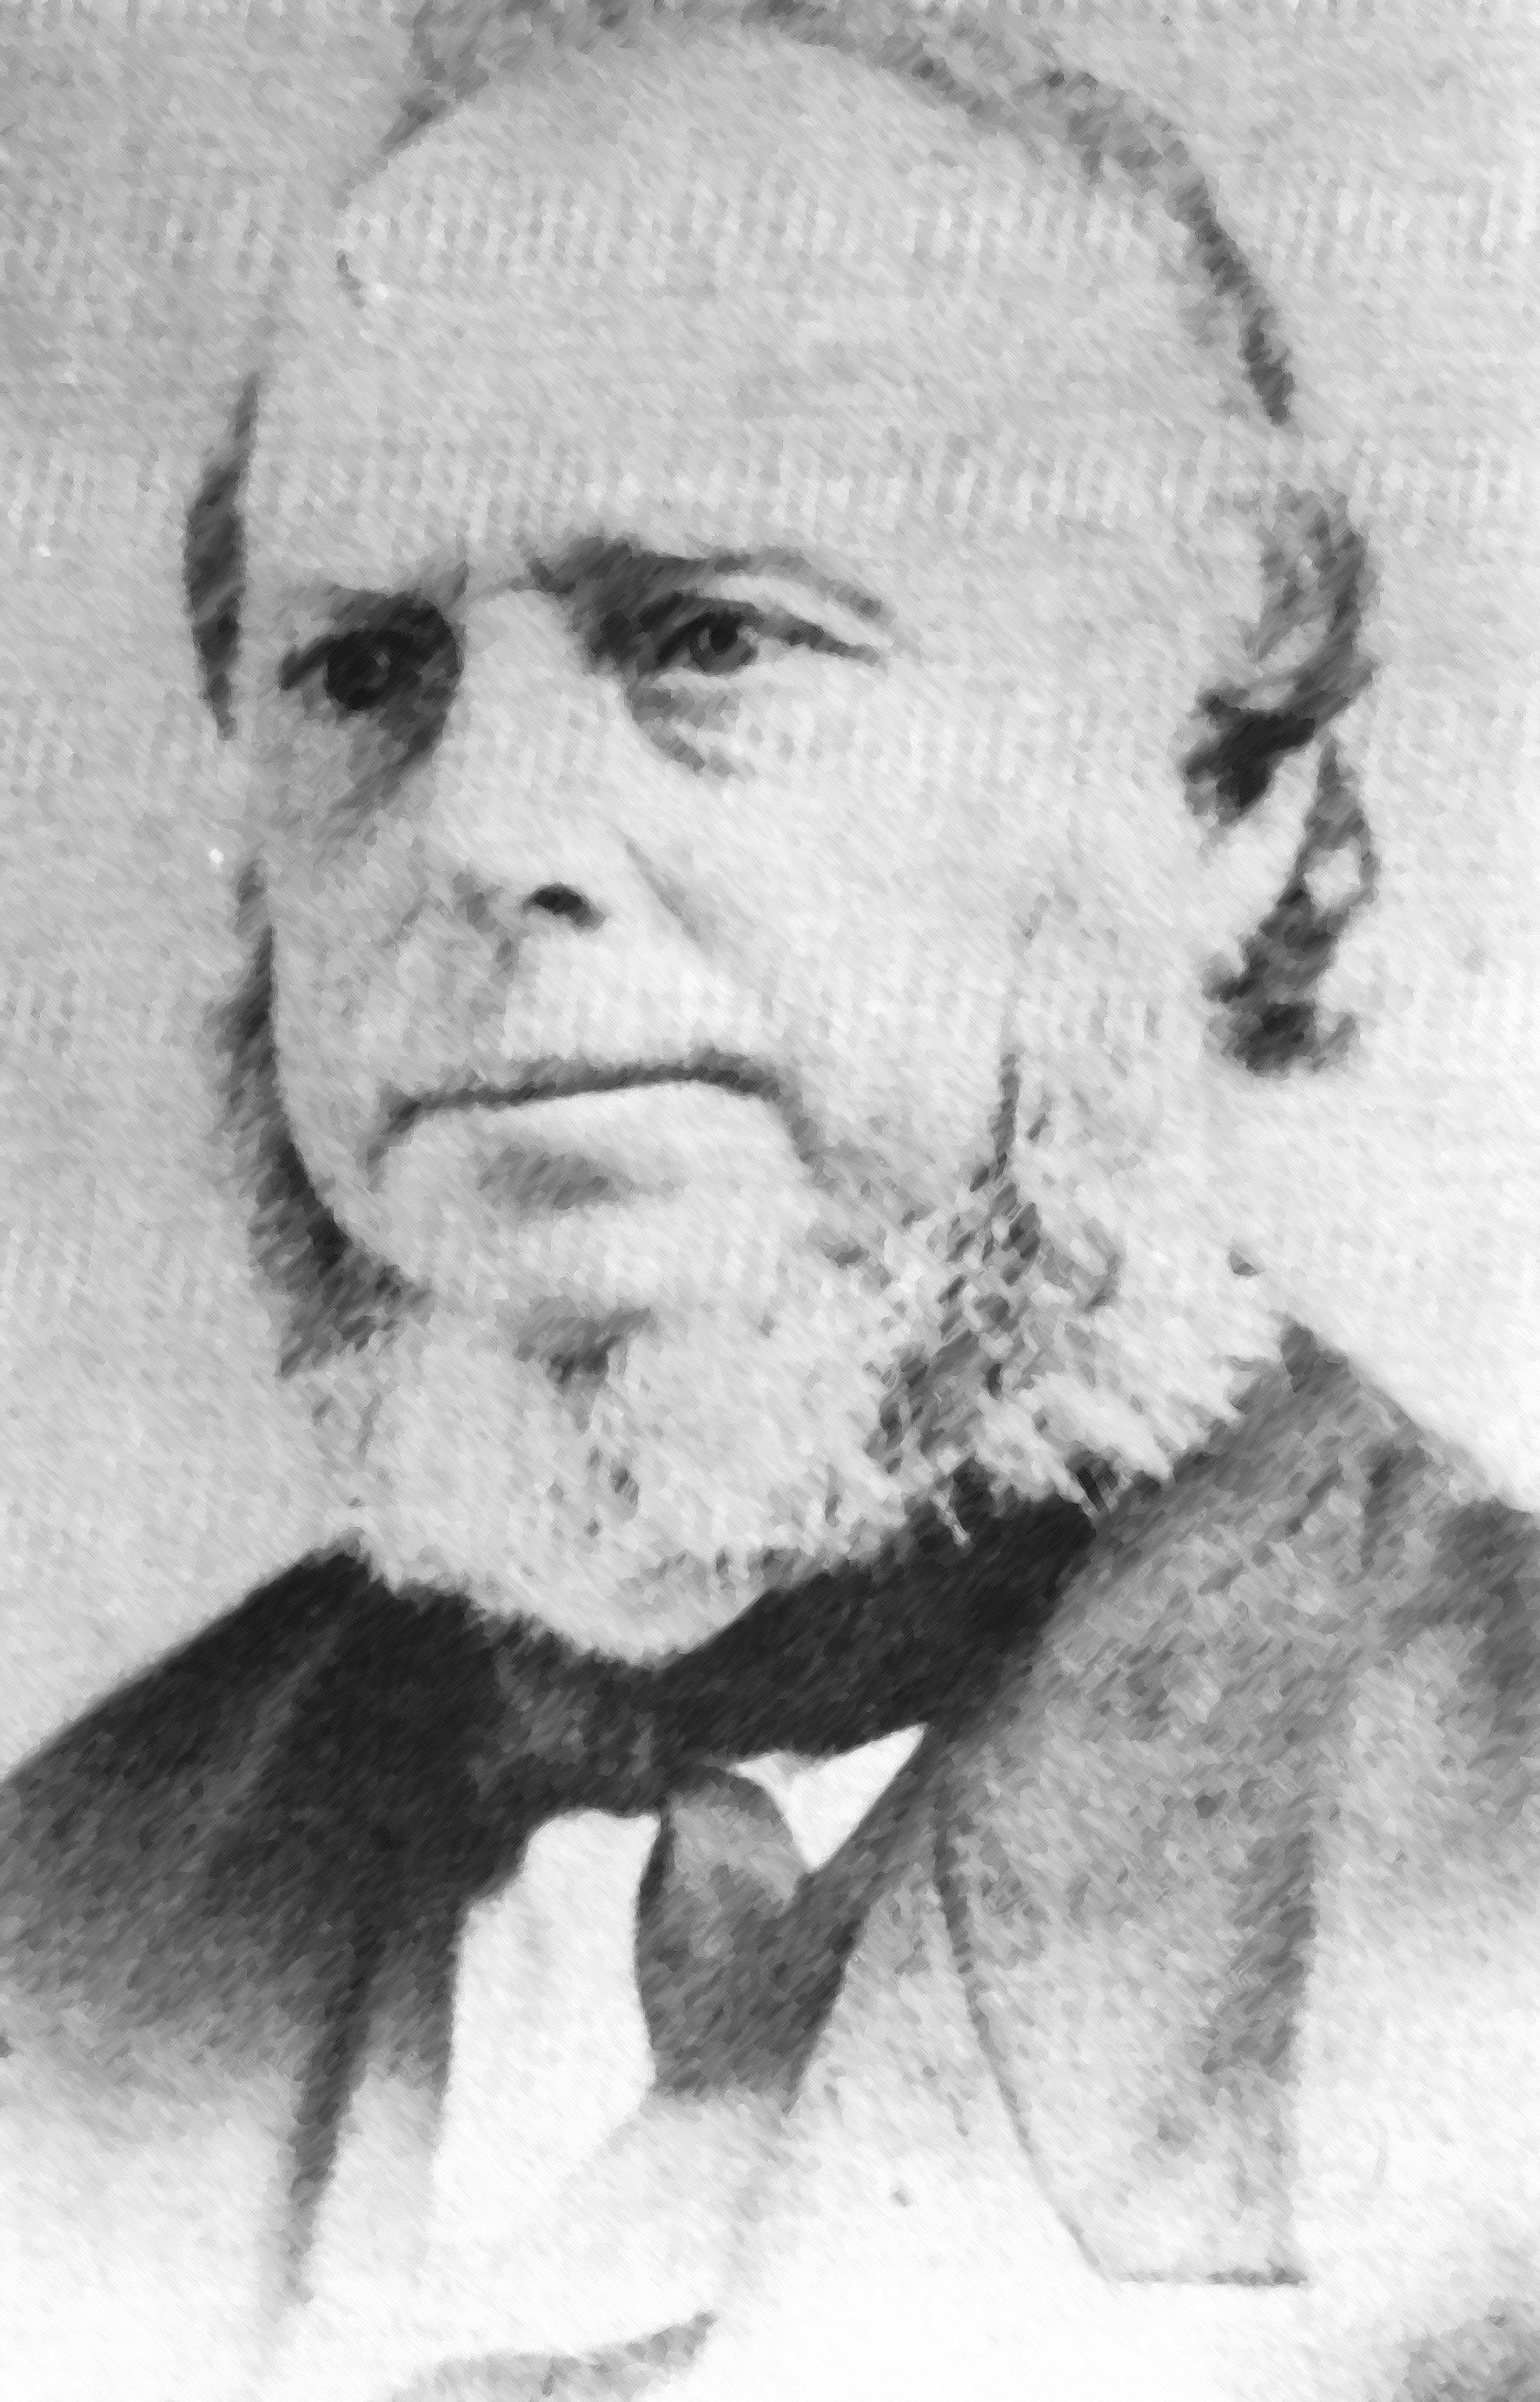 William Law, 1809-1892